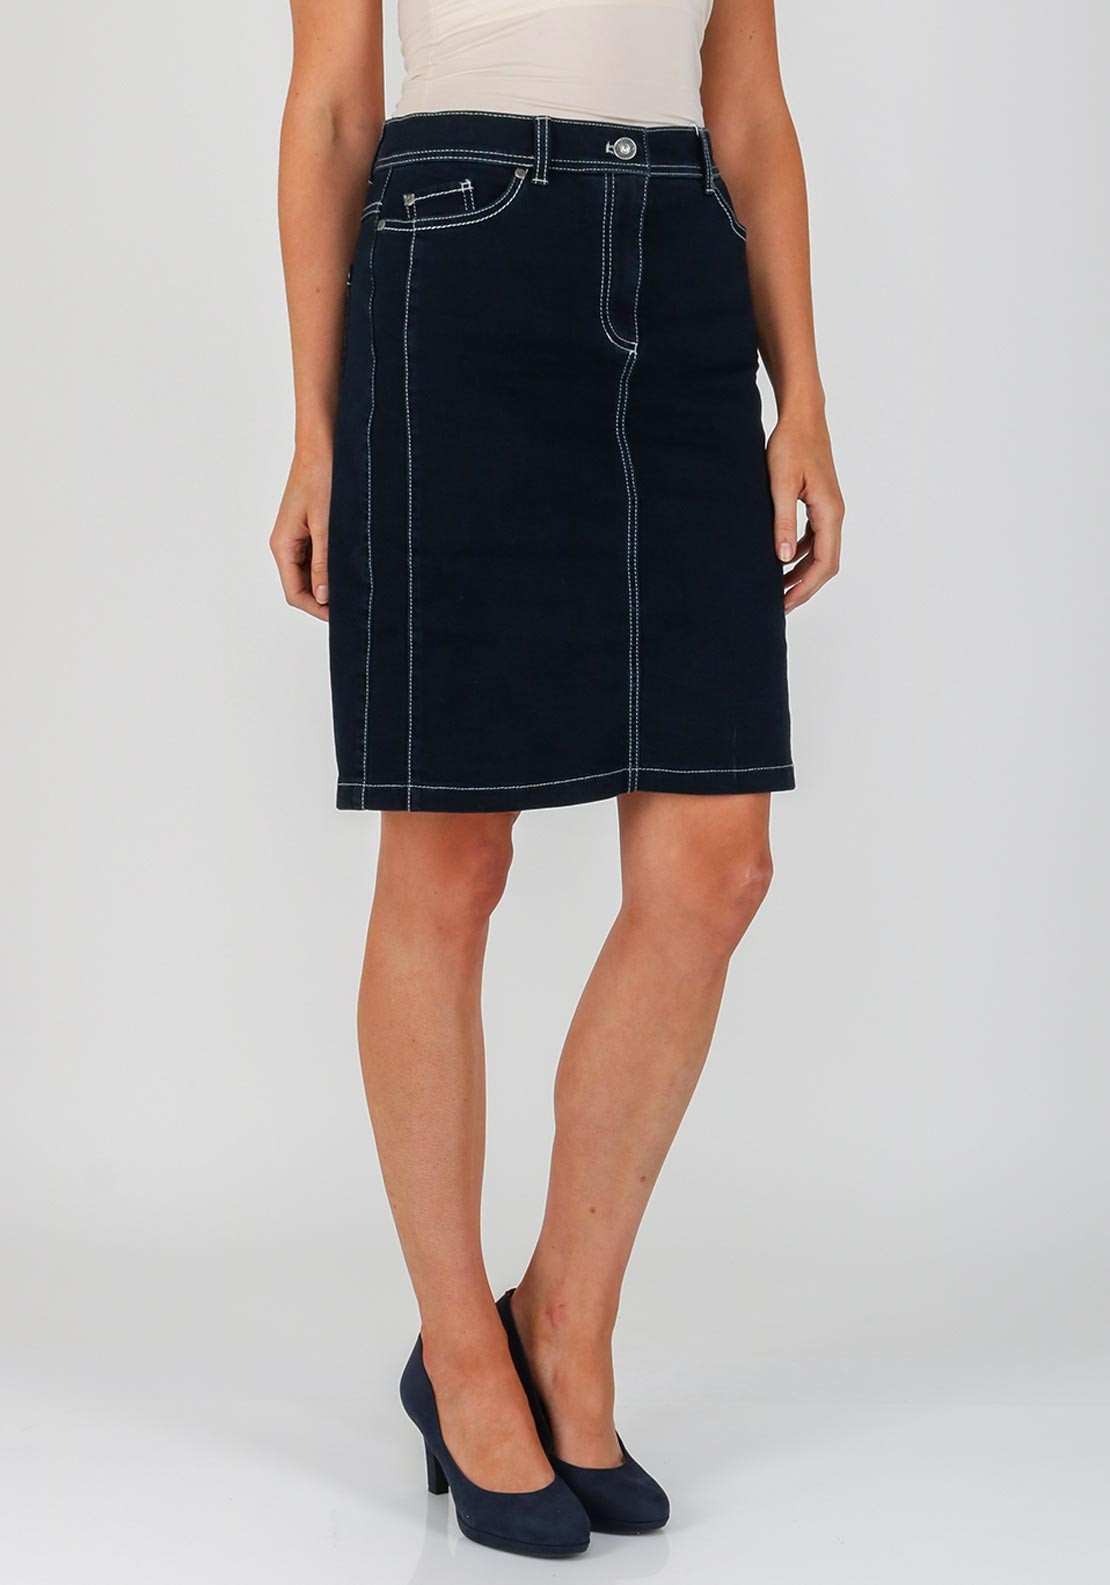 14d82809c3 Gerry Weber Denim Straight Skirt, Blue. Be the first to review this product